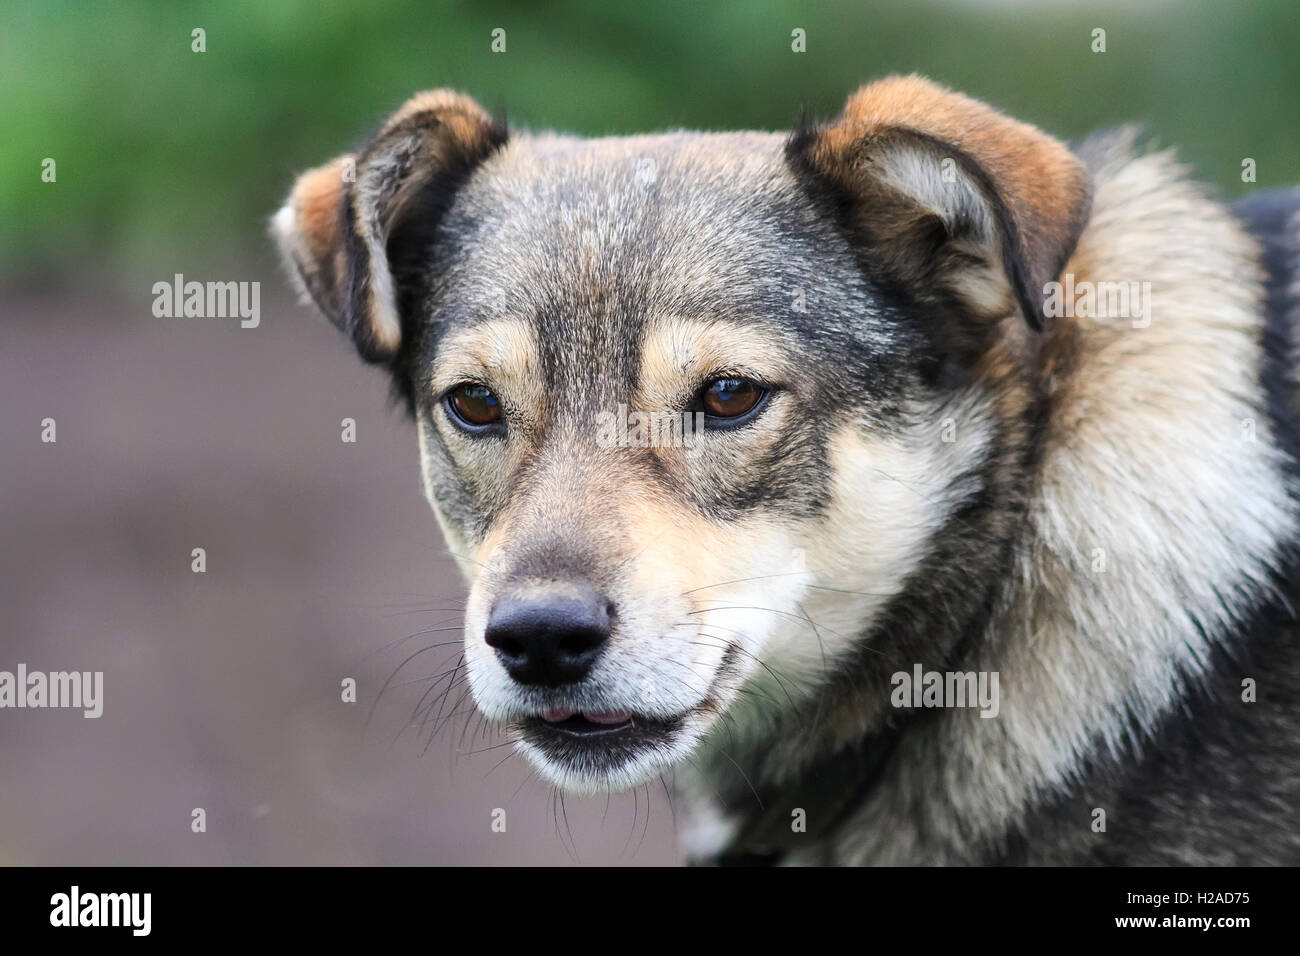 brown dog with a funny bark muzzle opened her mouth to each puppy pet funny silly nice - Stock Image